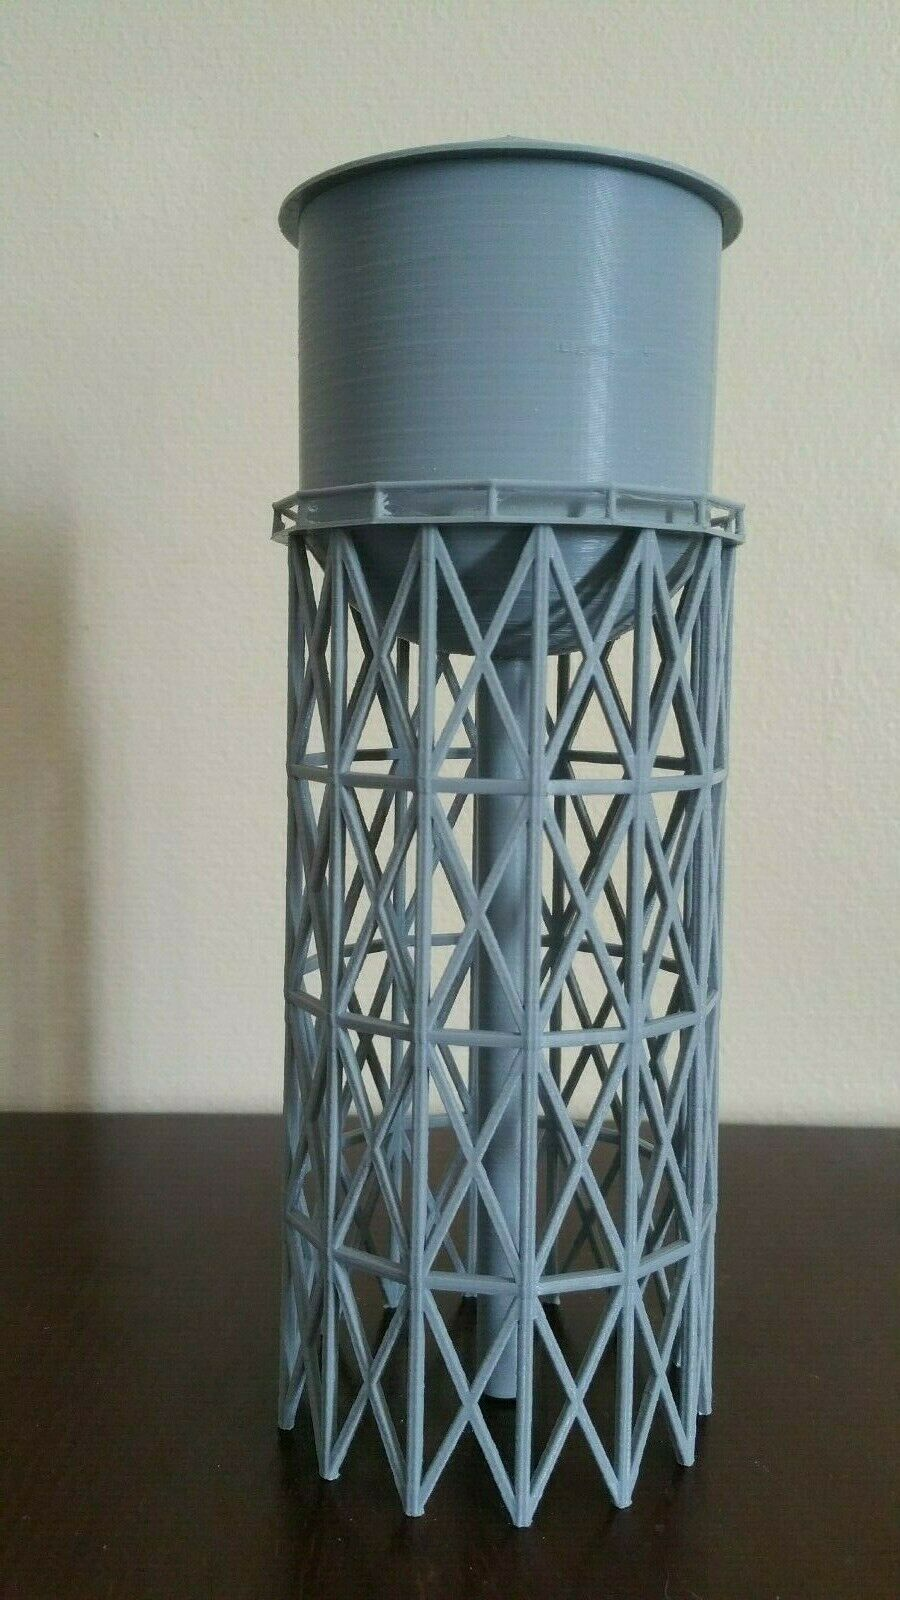 Water Tower Model 8.5  x 3  x 3